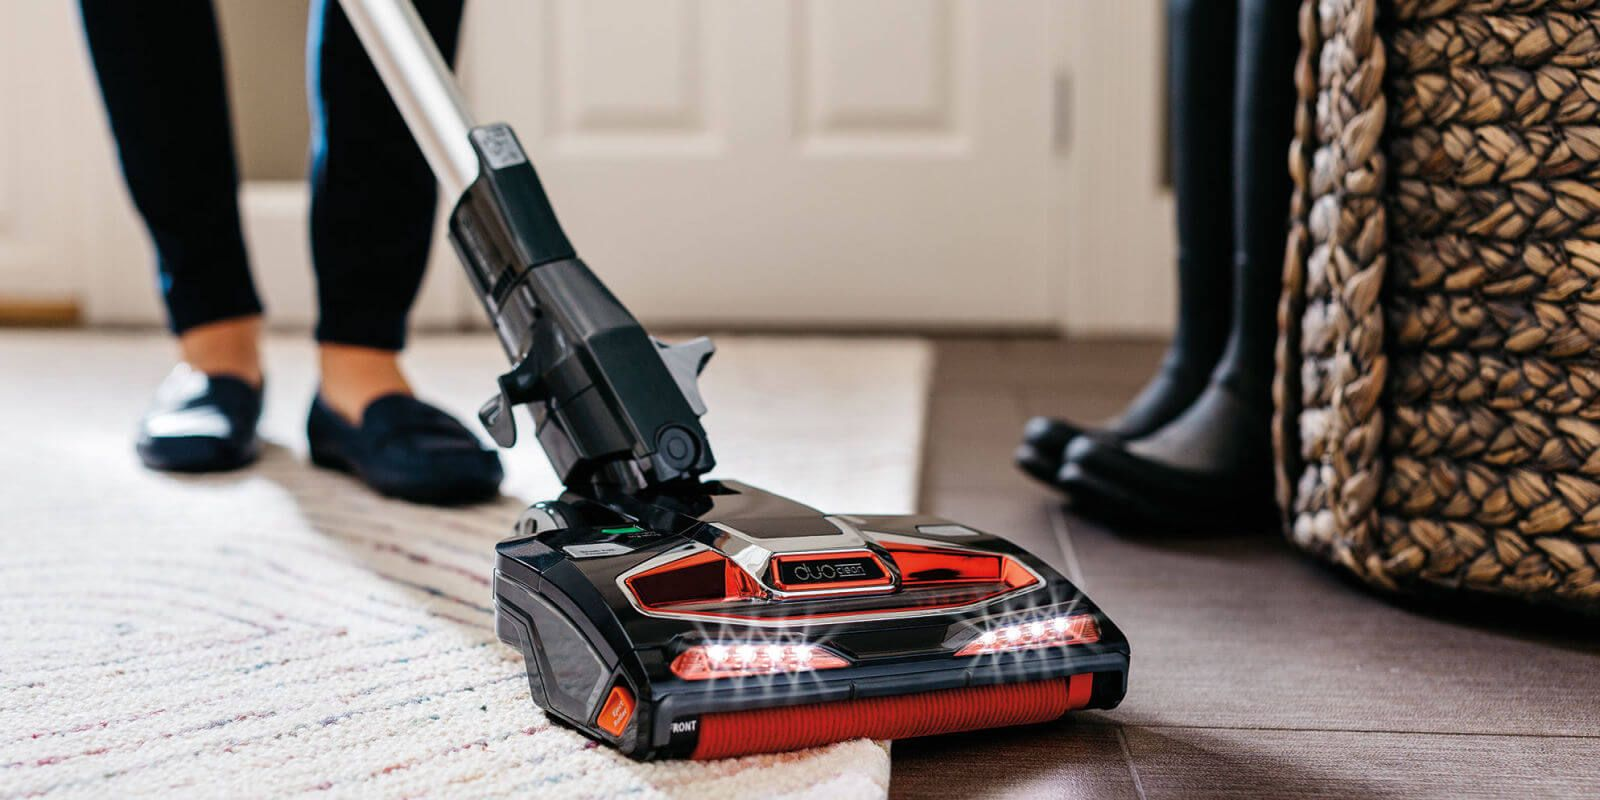 Shark Hand Vacuum Amazon